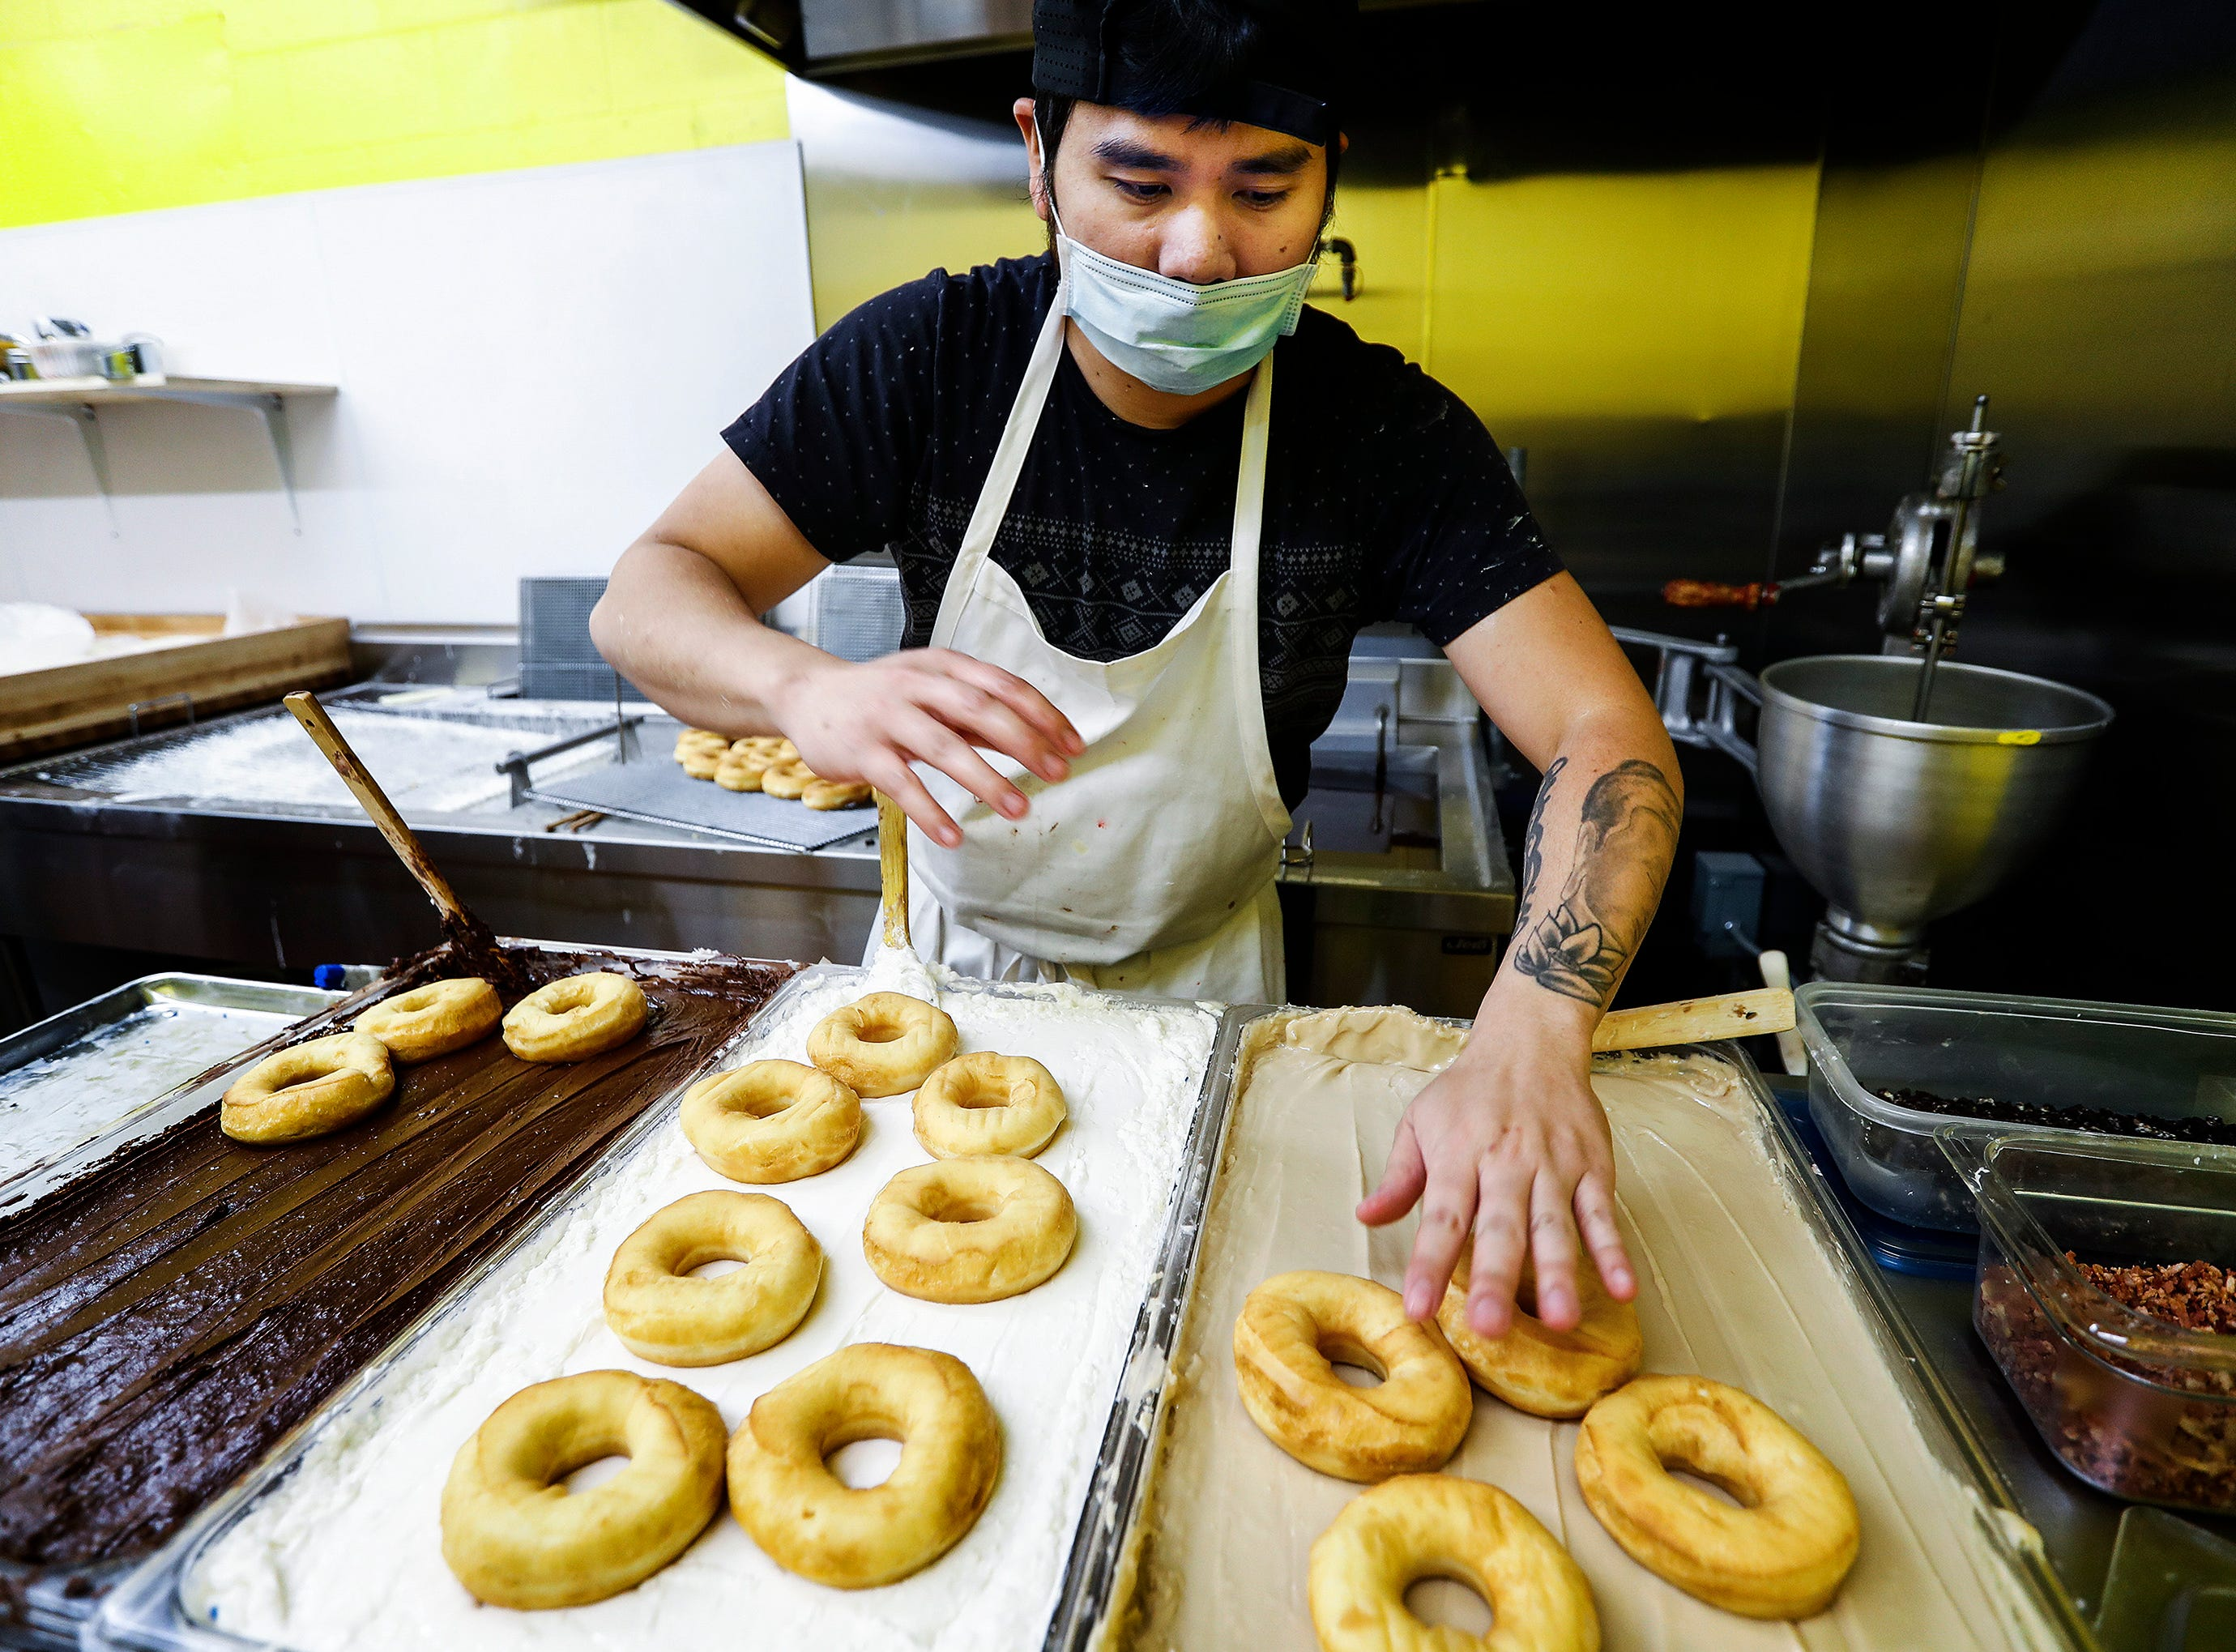 KP Phat glazes doughnuts during the grand opening of Midtown Donut on Union Ave., Saturday morning. Midtown Donuts will offer a selection of coffees, including brewed coffee and cappuccinos. The doughnut shop will be open seven days a week from 4 a.m. to 7 p.m.